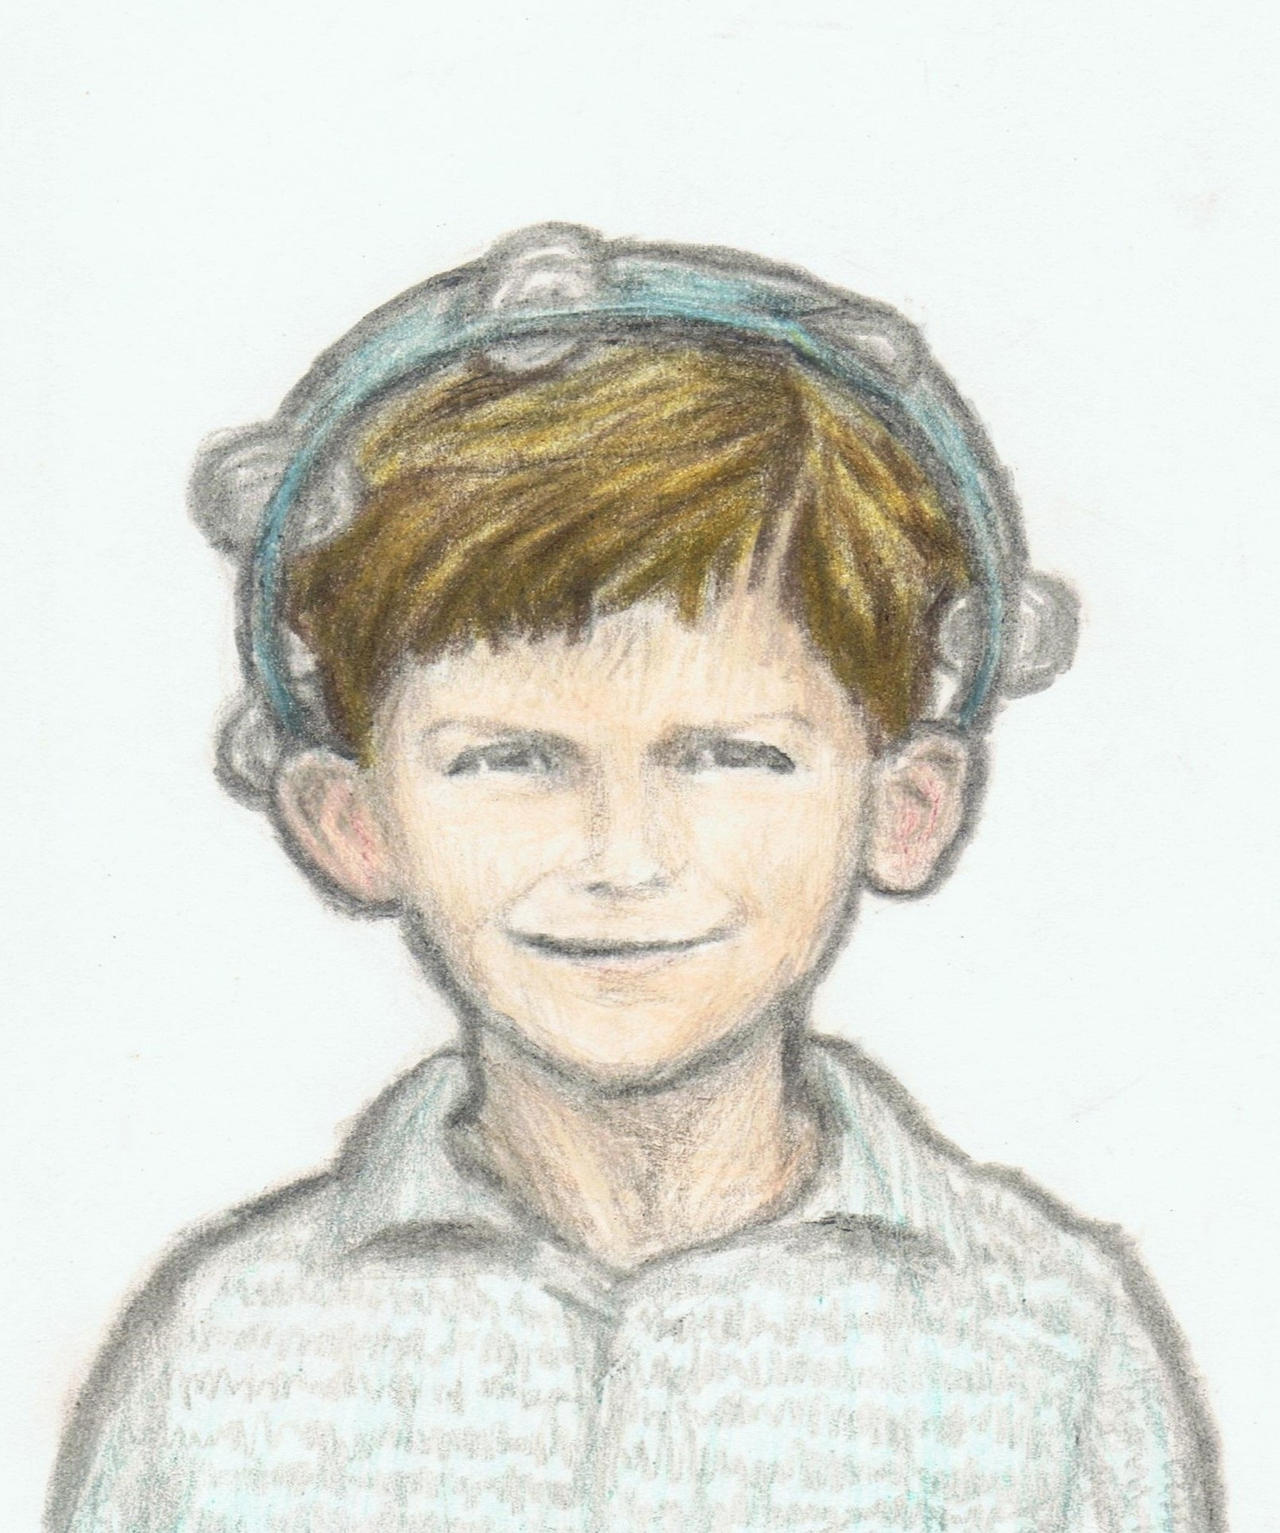 George Tambourineson as a young boy by gagambo